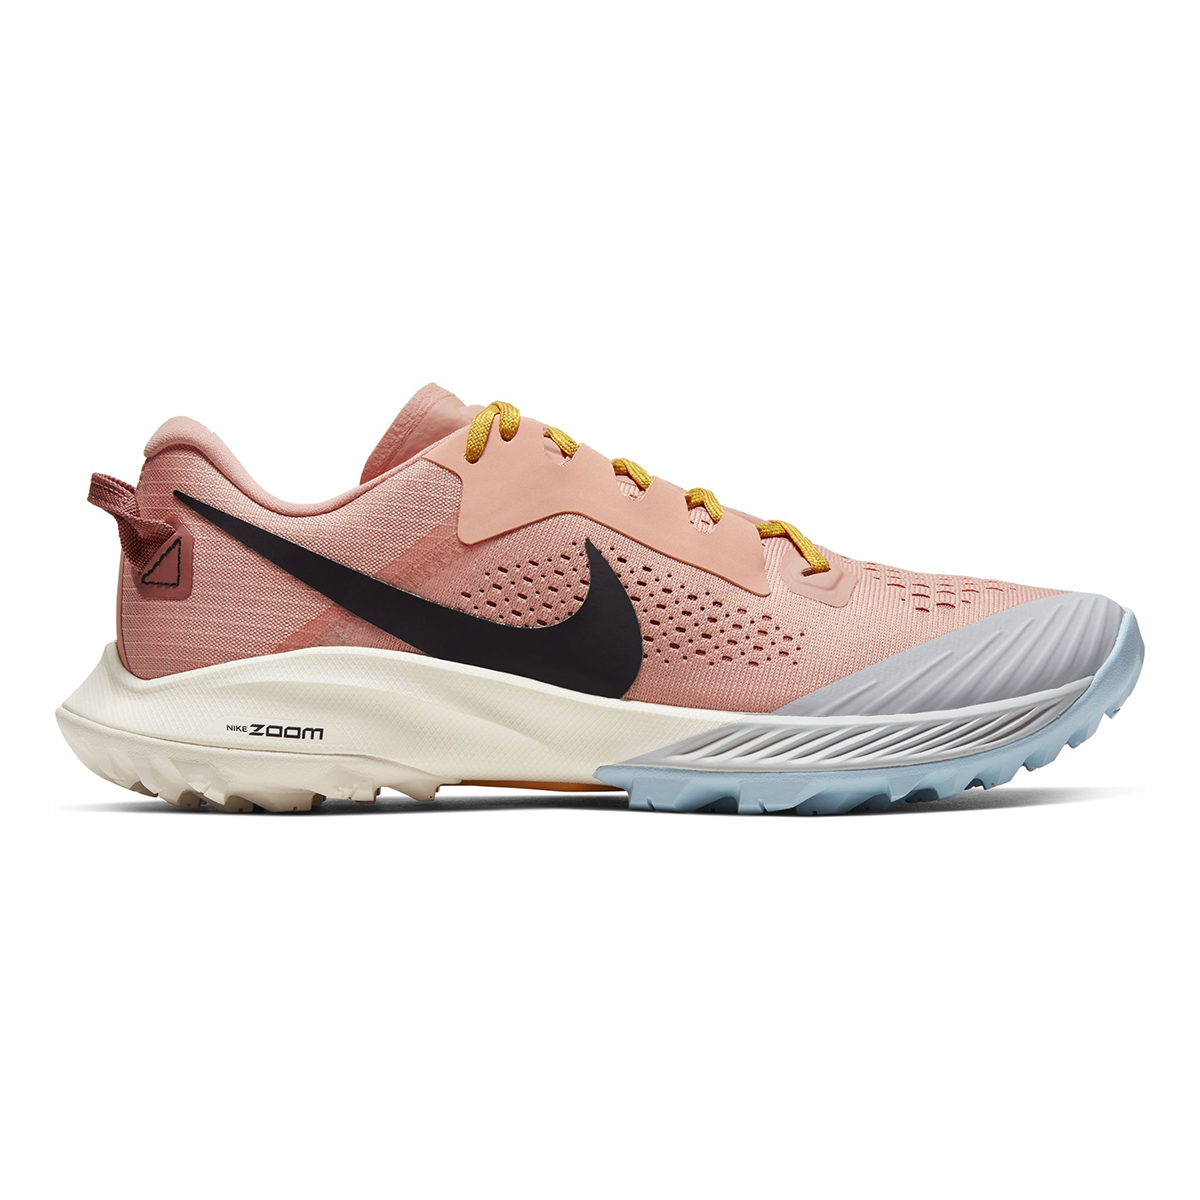 Women's Nike Air Zoom Terra Kiger 6 Trail Running Shoe - Color: Pink Quartz/Canyon Pink/Sky Grey/Burgundy Ash (Regular Width) - Size: 5, Pink Quartz/Canyon Pink/Sky Grey/Burgundy Ash, large, image 1